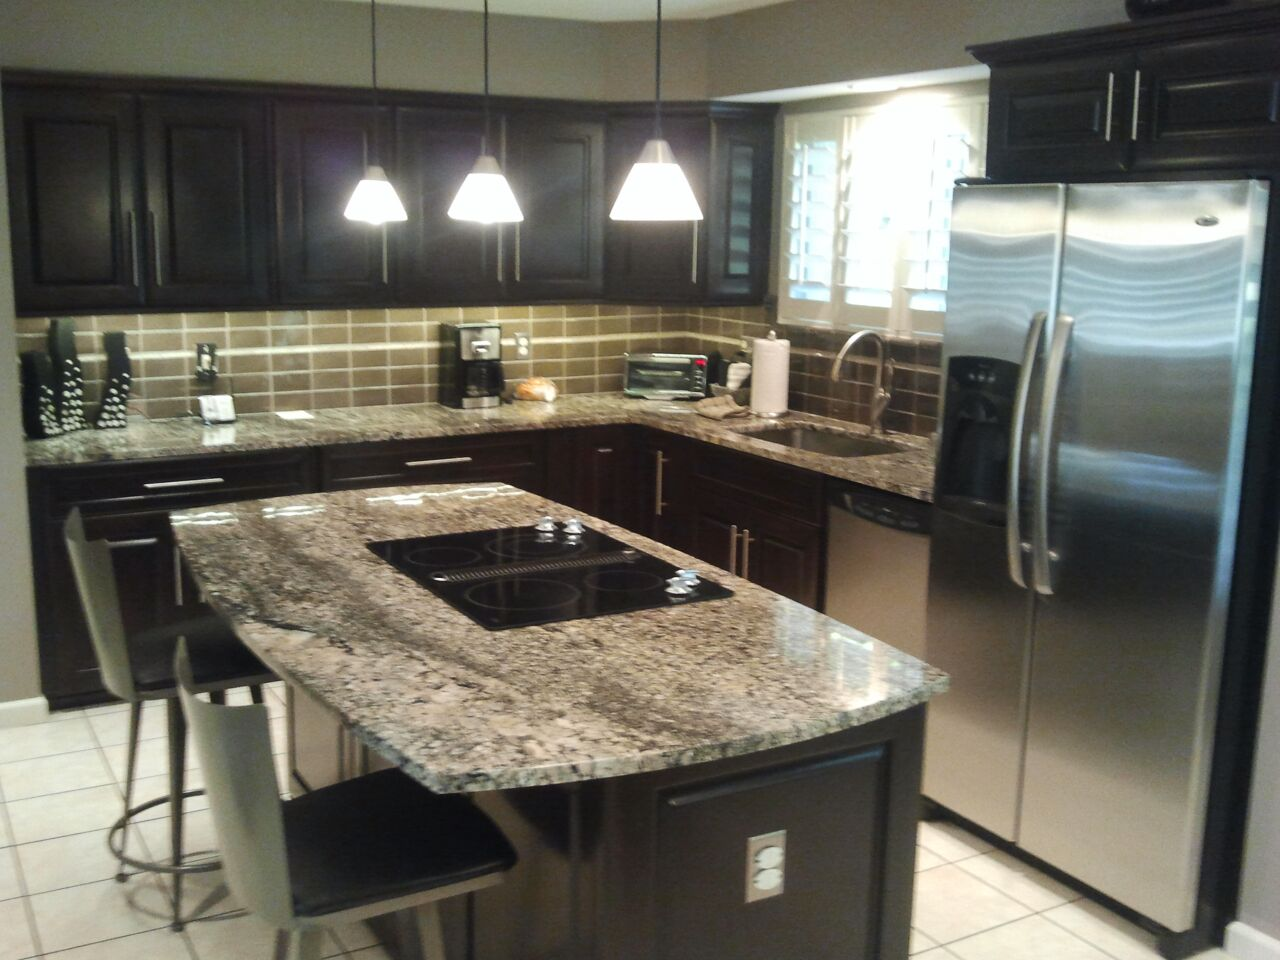 Kitchen Cabinets St Louis Cabinet Refacing St Louis Mo Cabinet Refinishing St Louis Mo